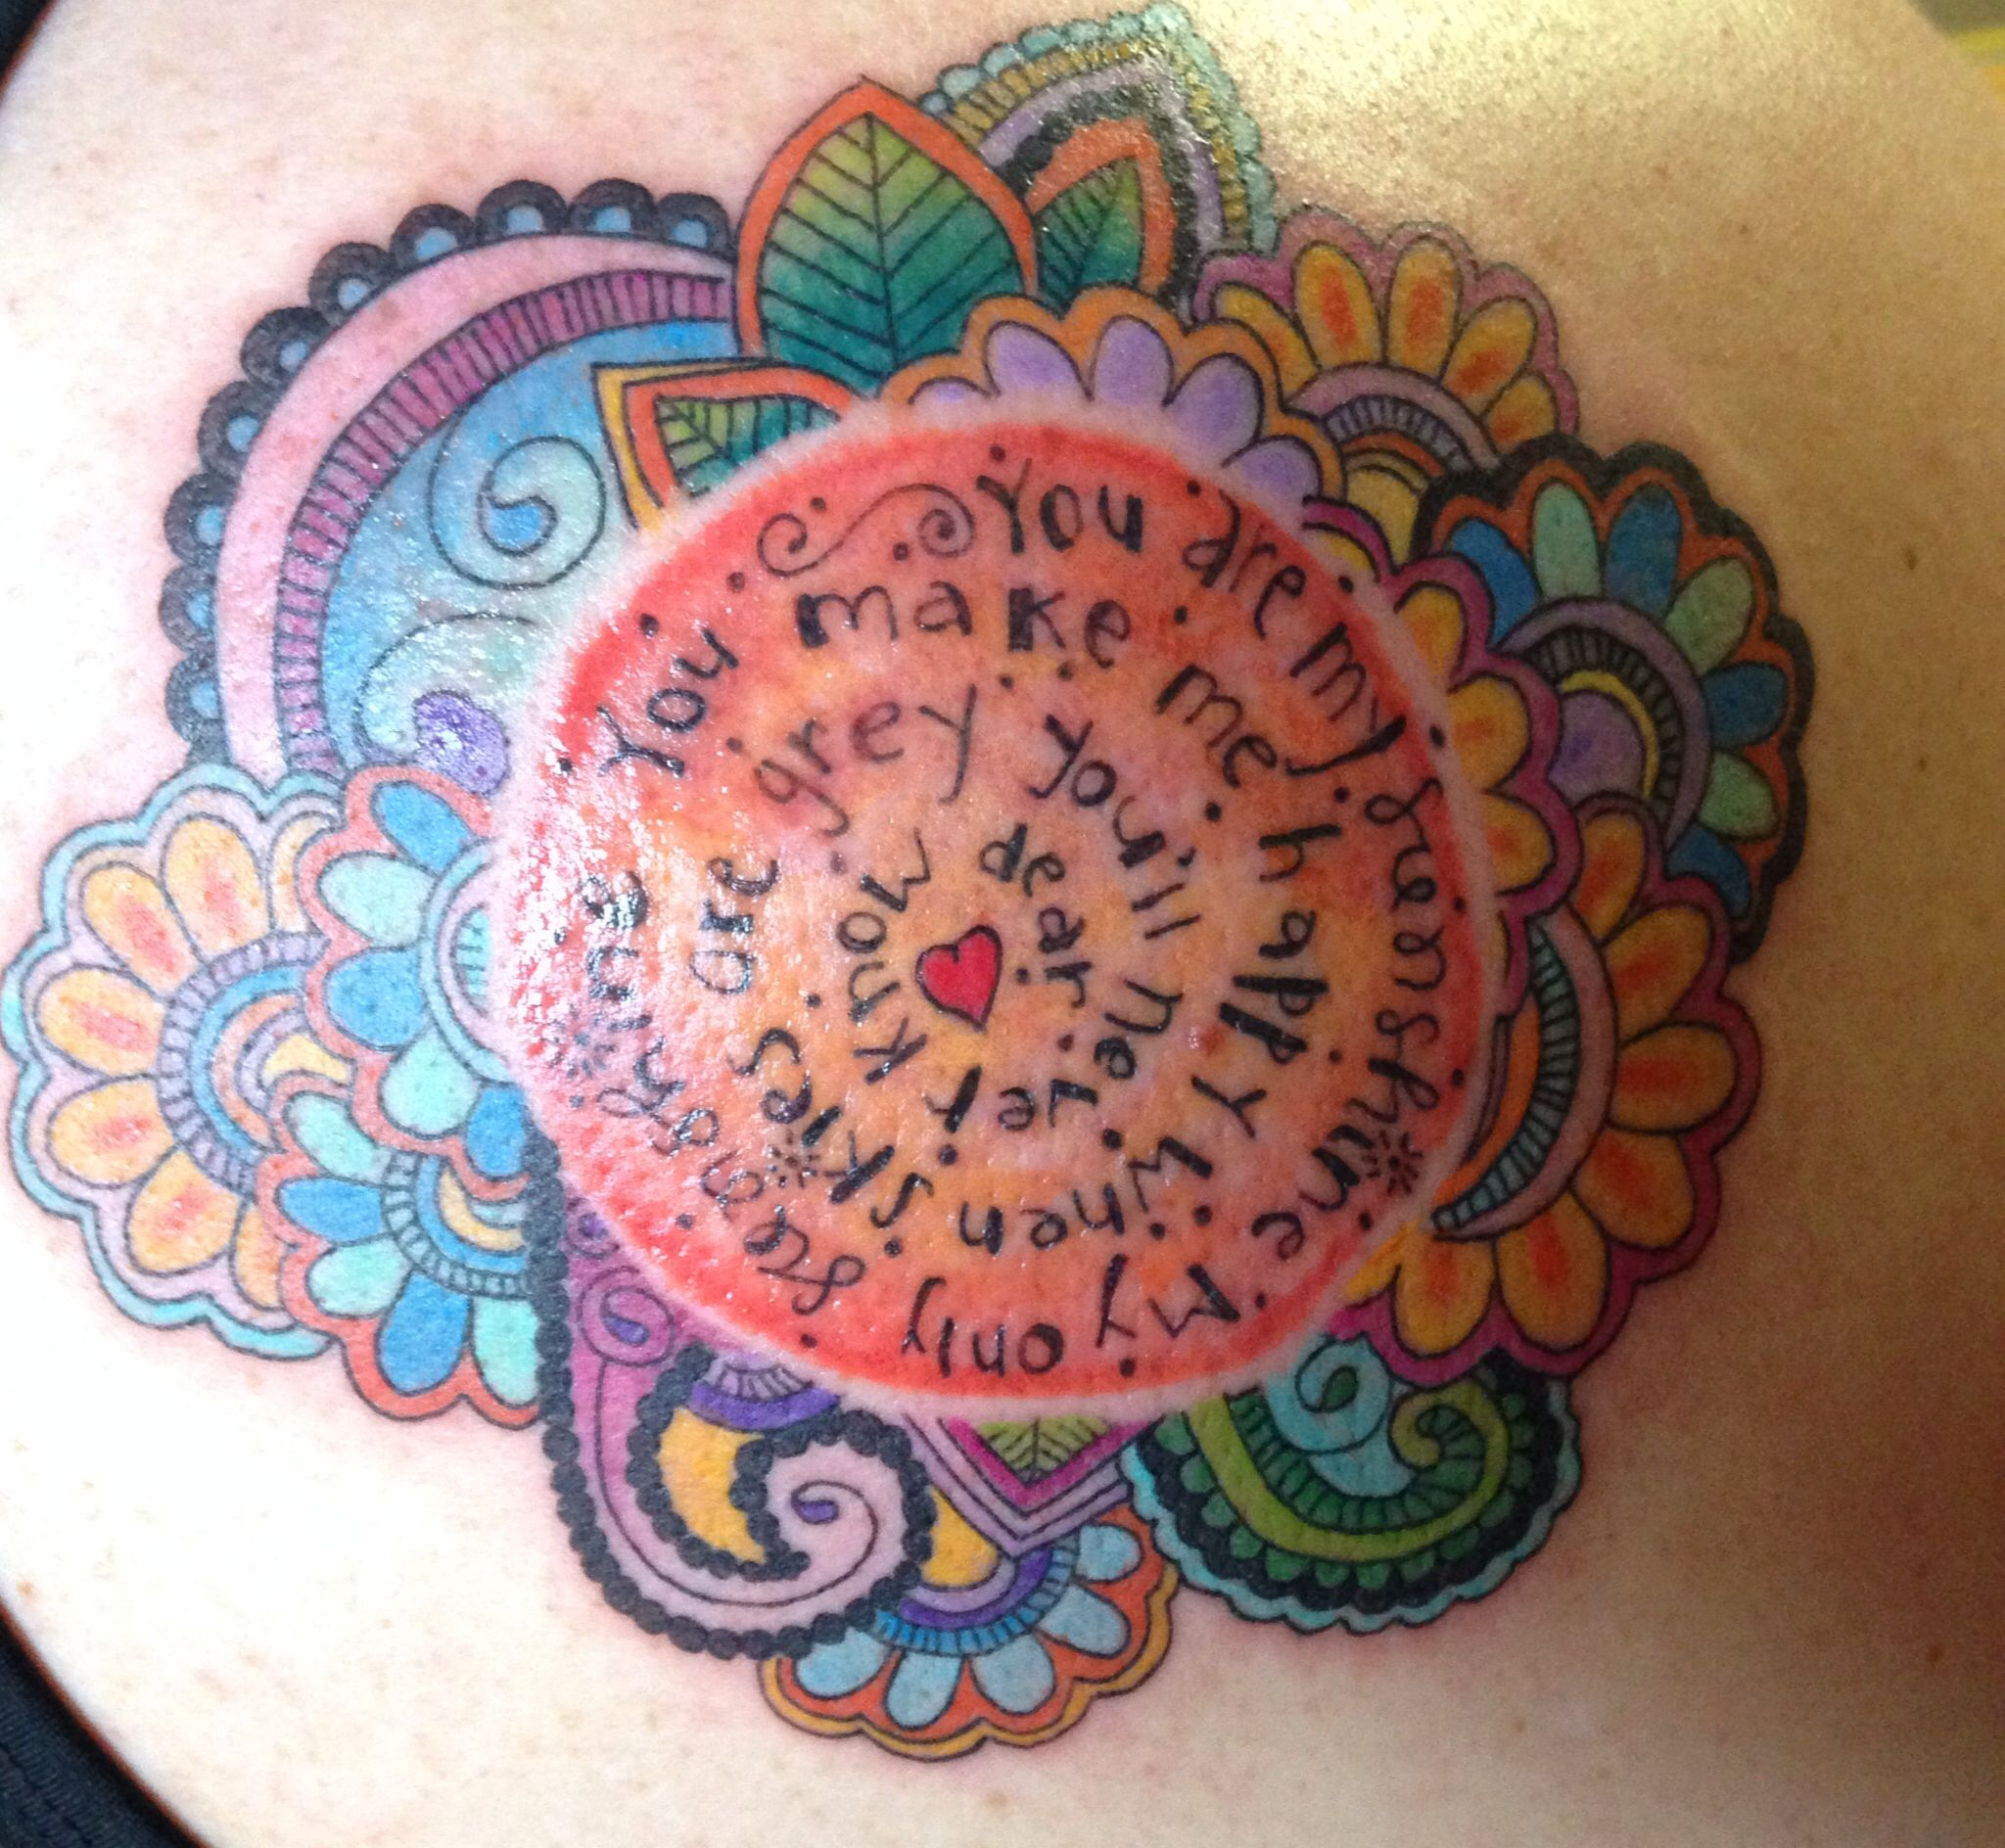 Tattoo Ideas You Are My Sunshine: You Are My Sunshine Tattoo, Something Like This But With